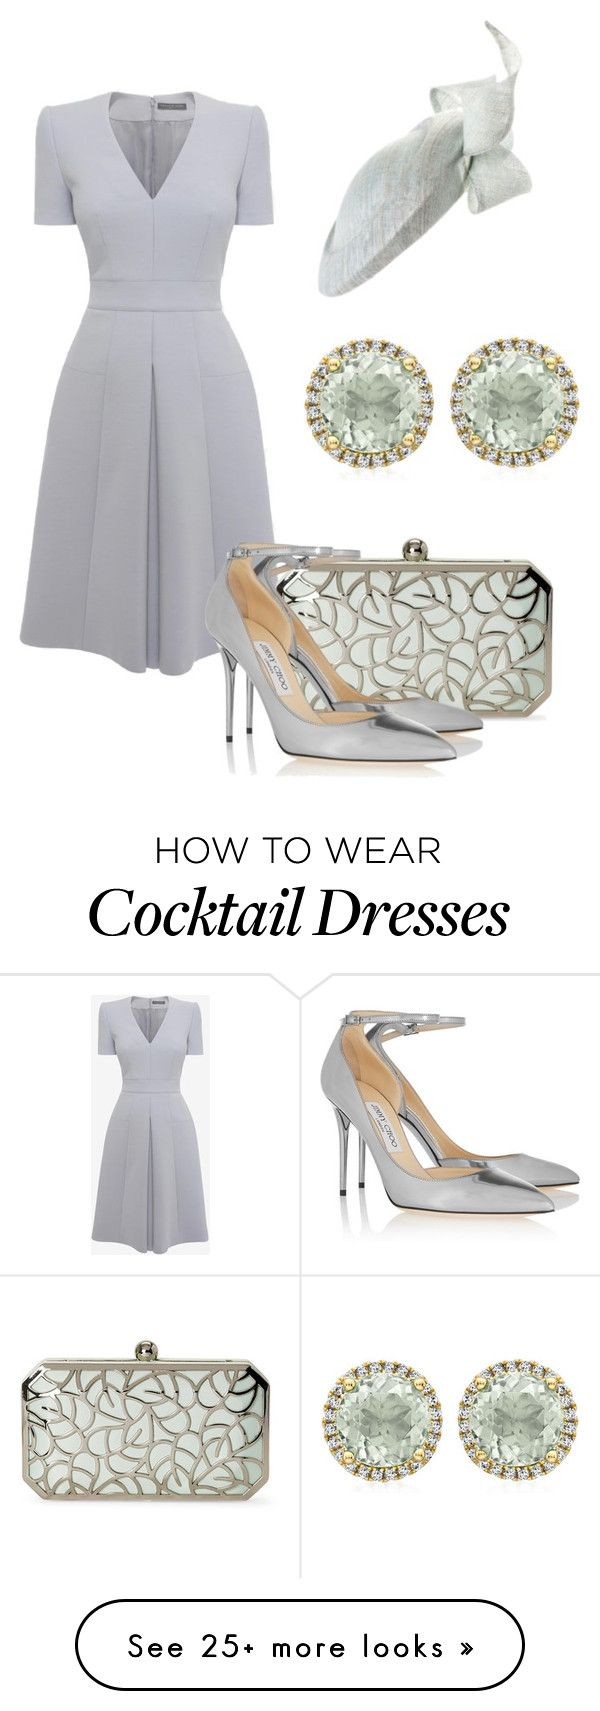 """Без названия #1145"" by svetlana-kazantsewa on Polyvore featuring Alexander McQueen, La Regale, Jimmy Choo and Kiki mcdonough"